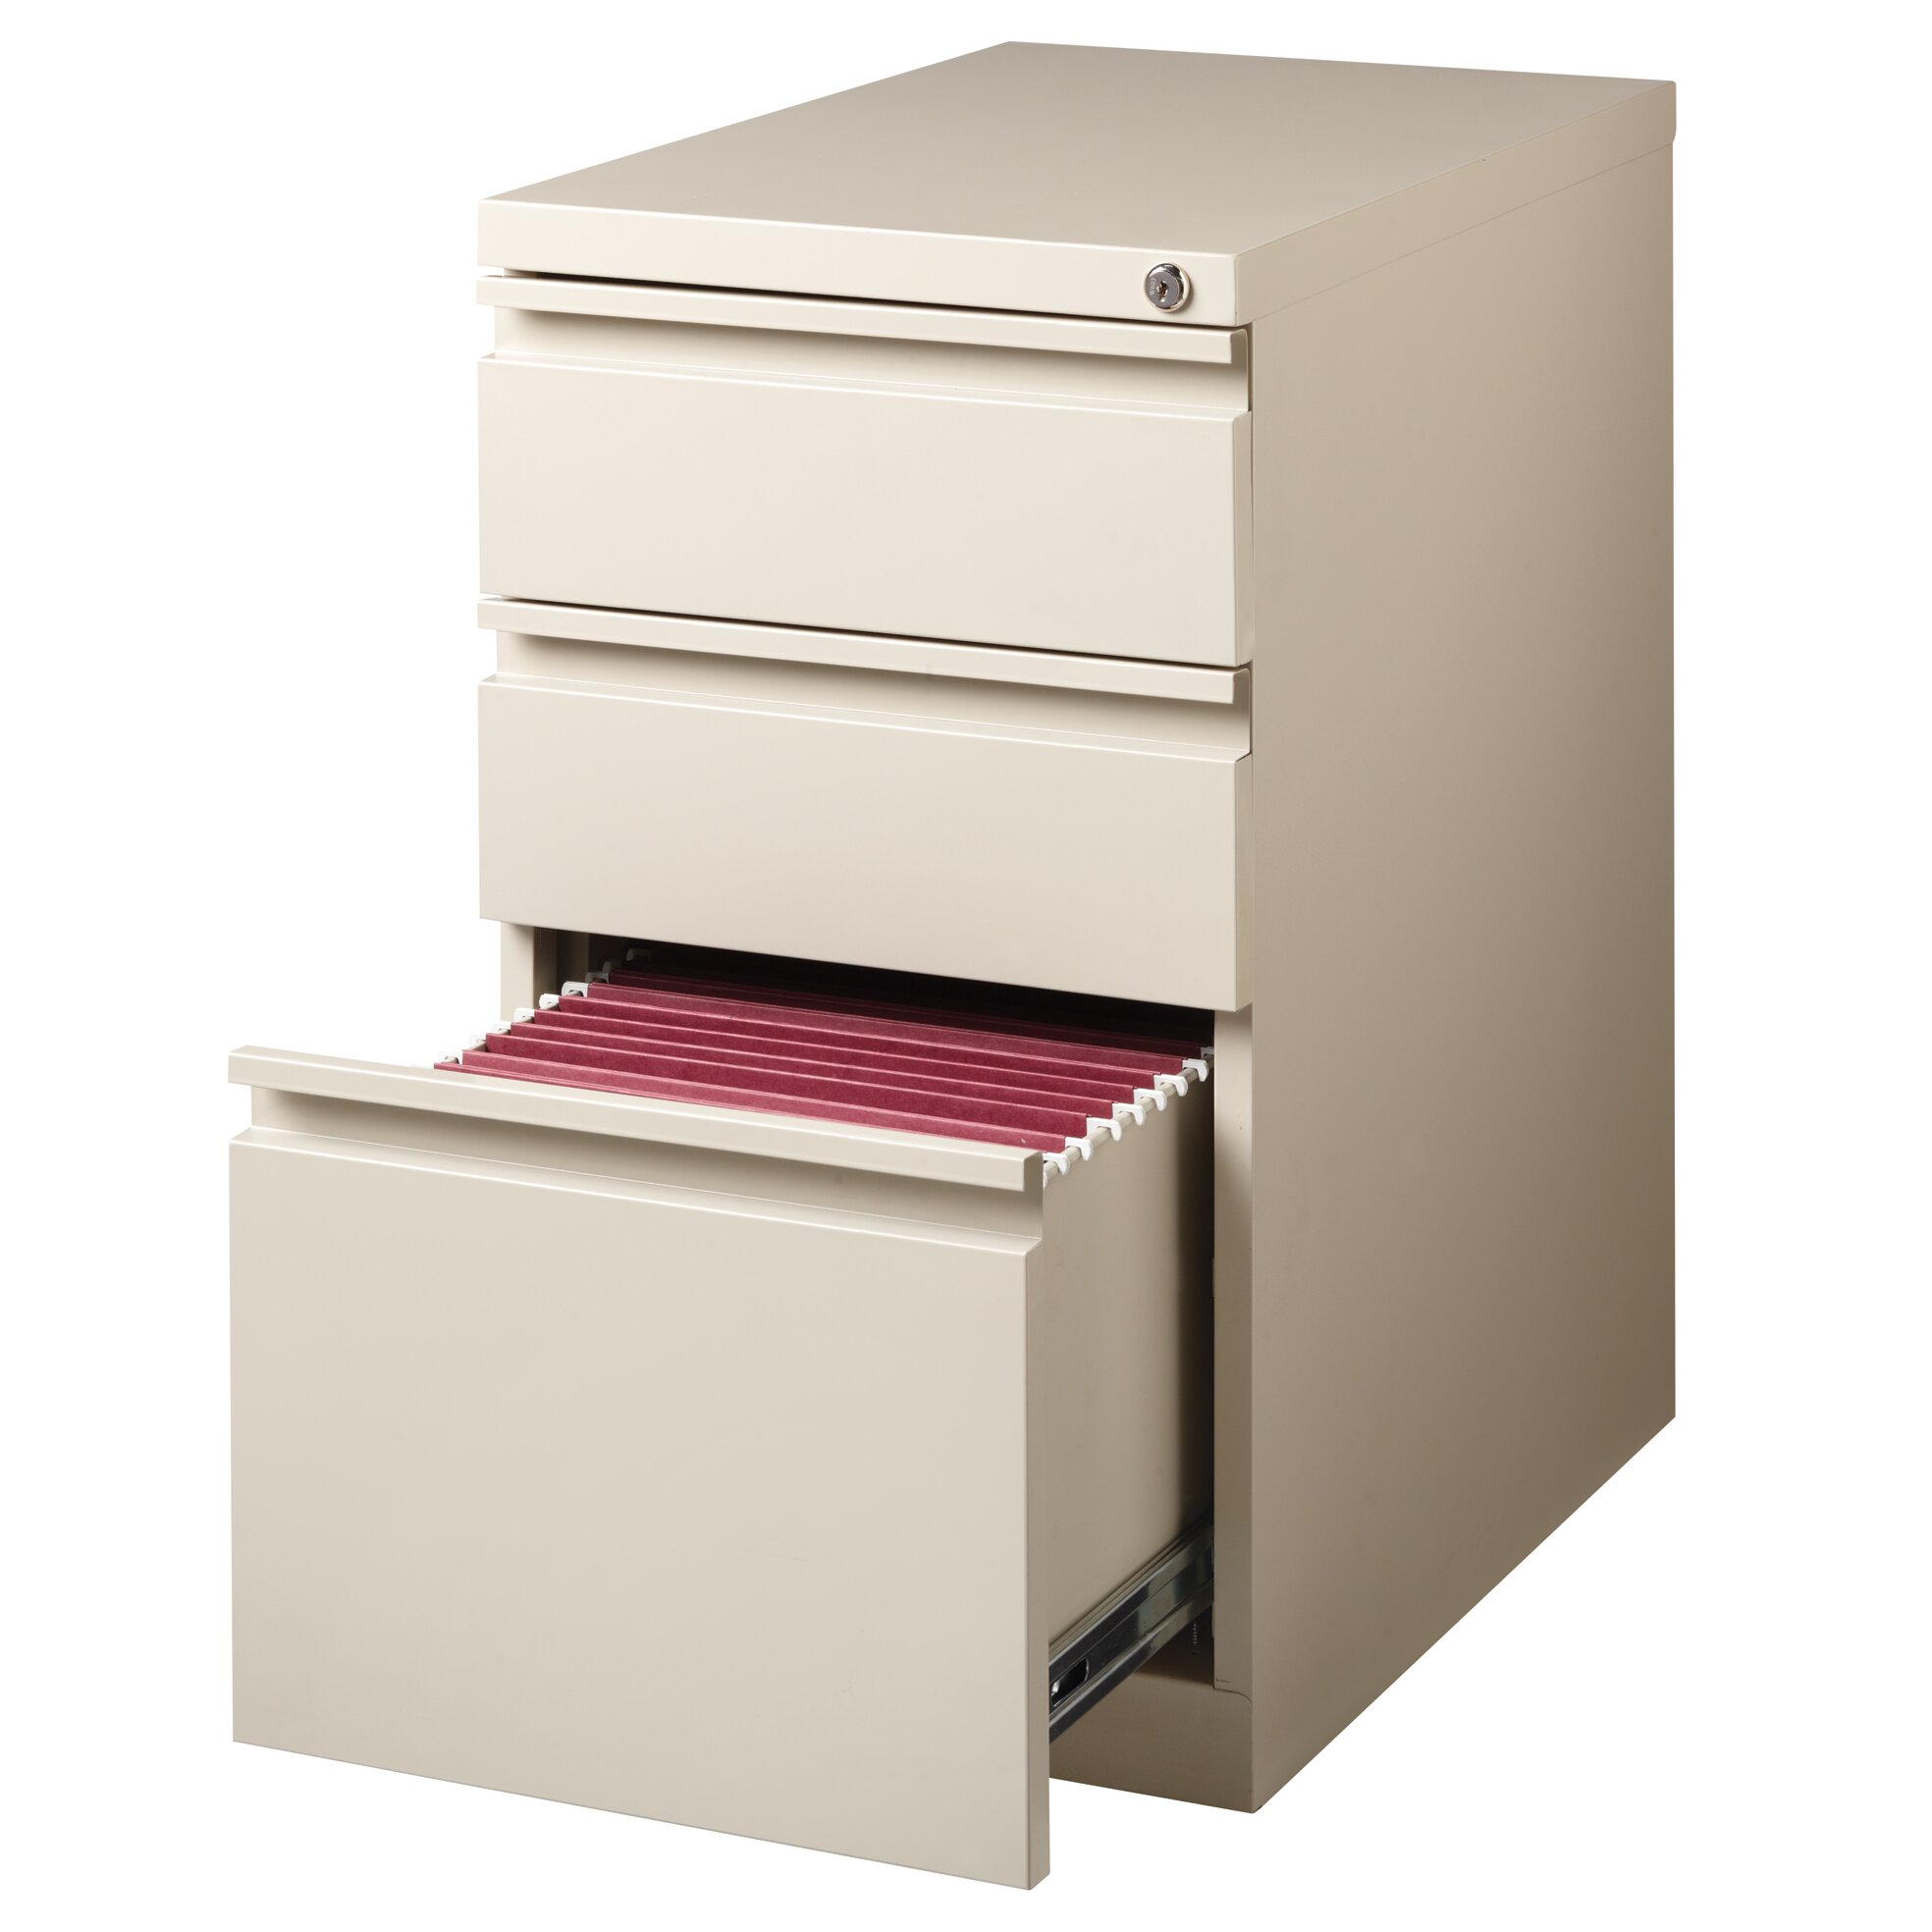 Hanging Files For Filing Cabinets Rolling Filing Cabinets Youll Love Wayfair